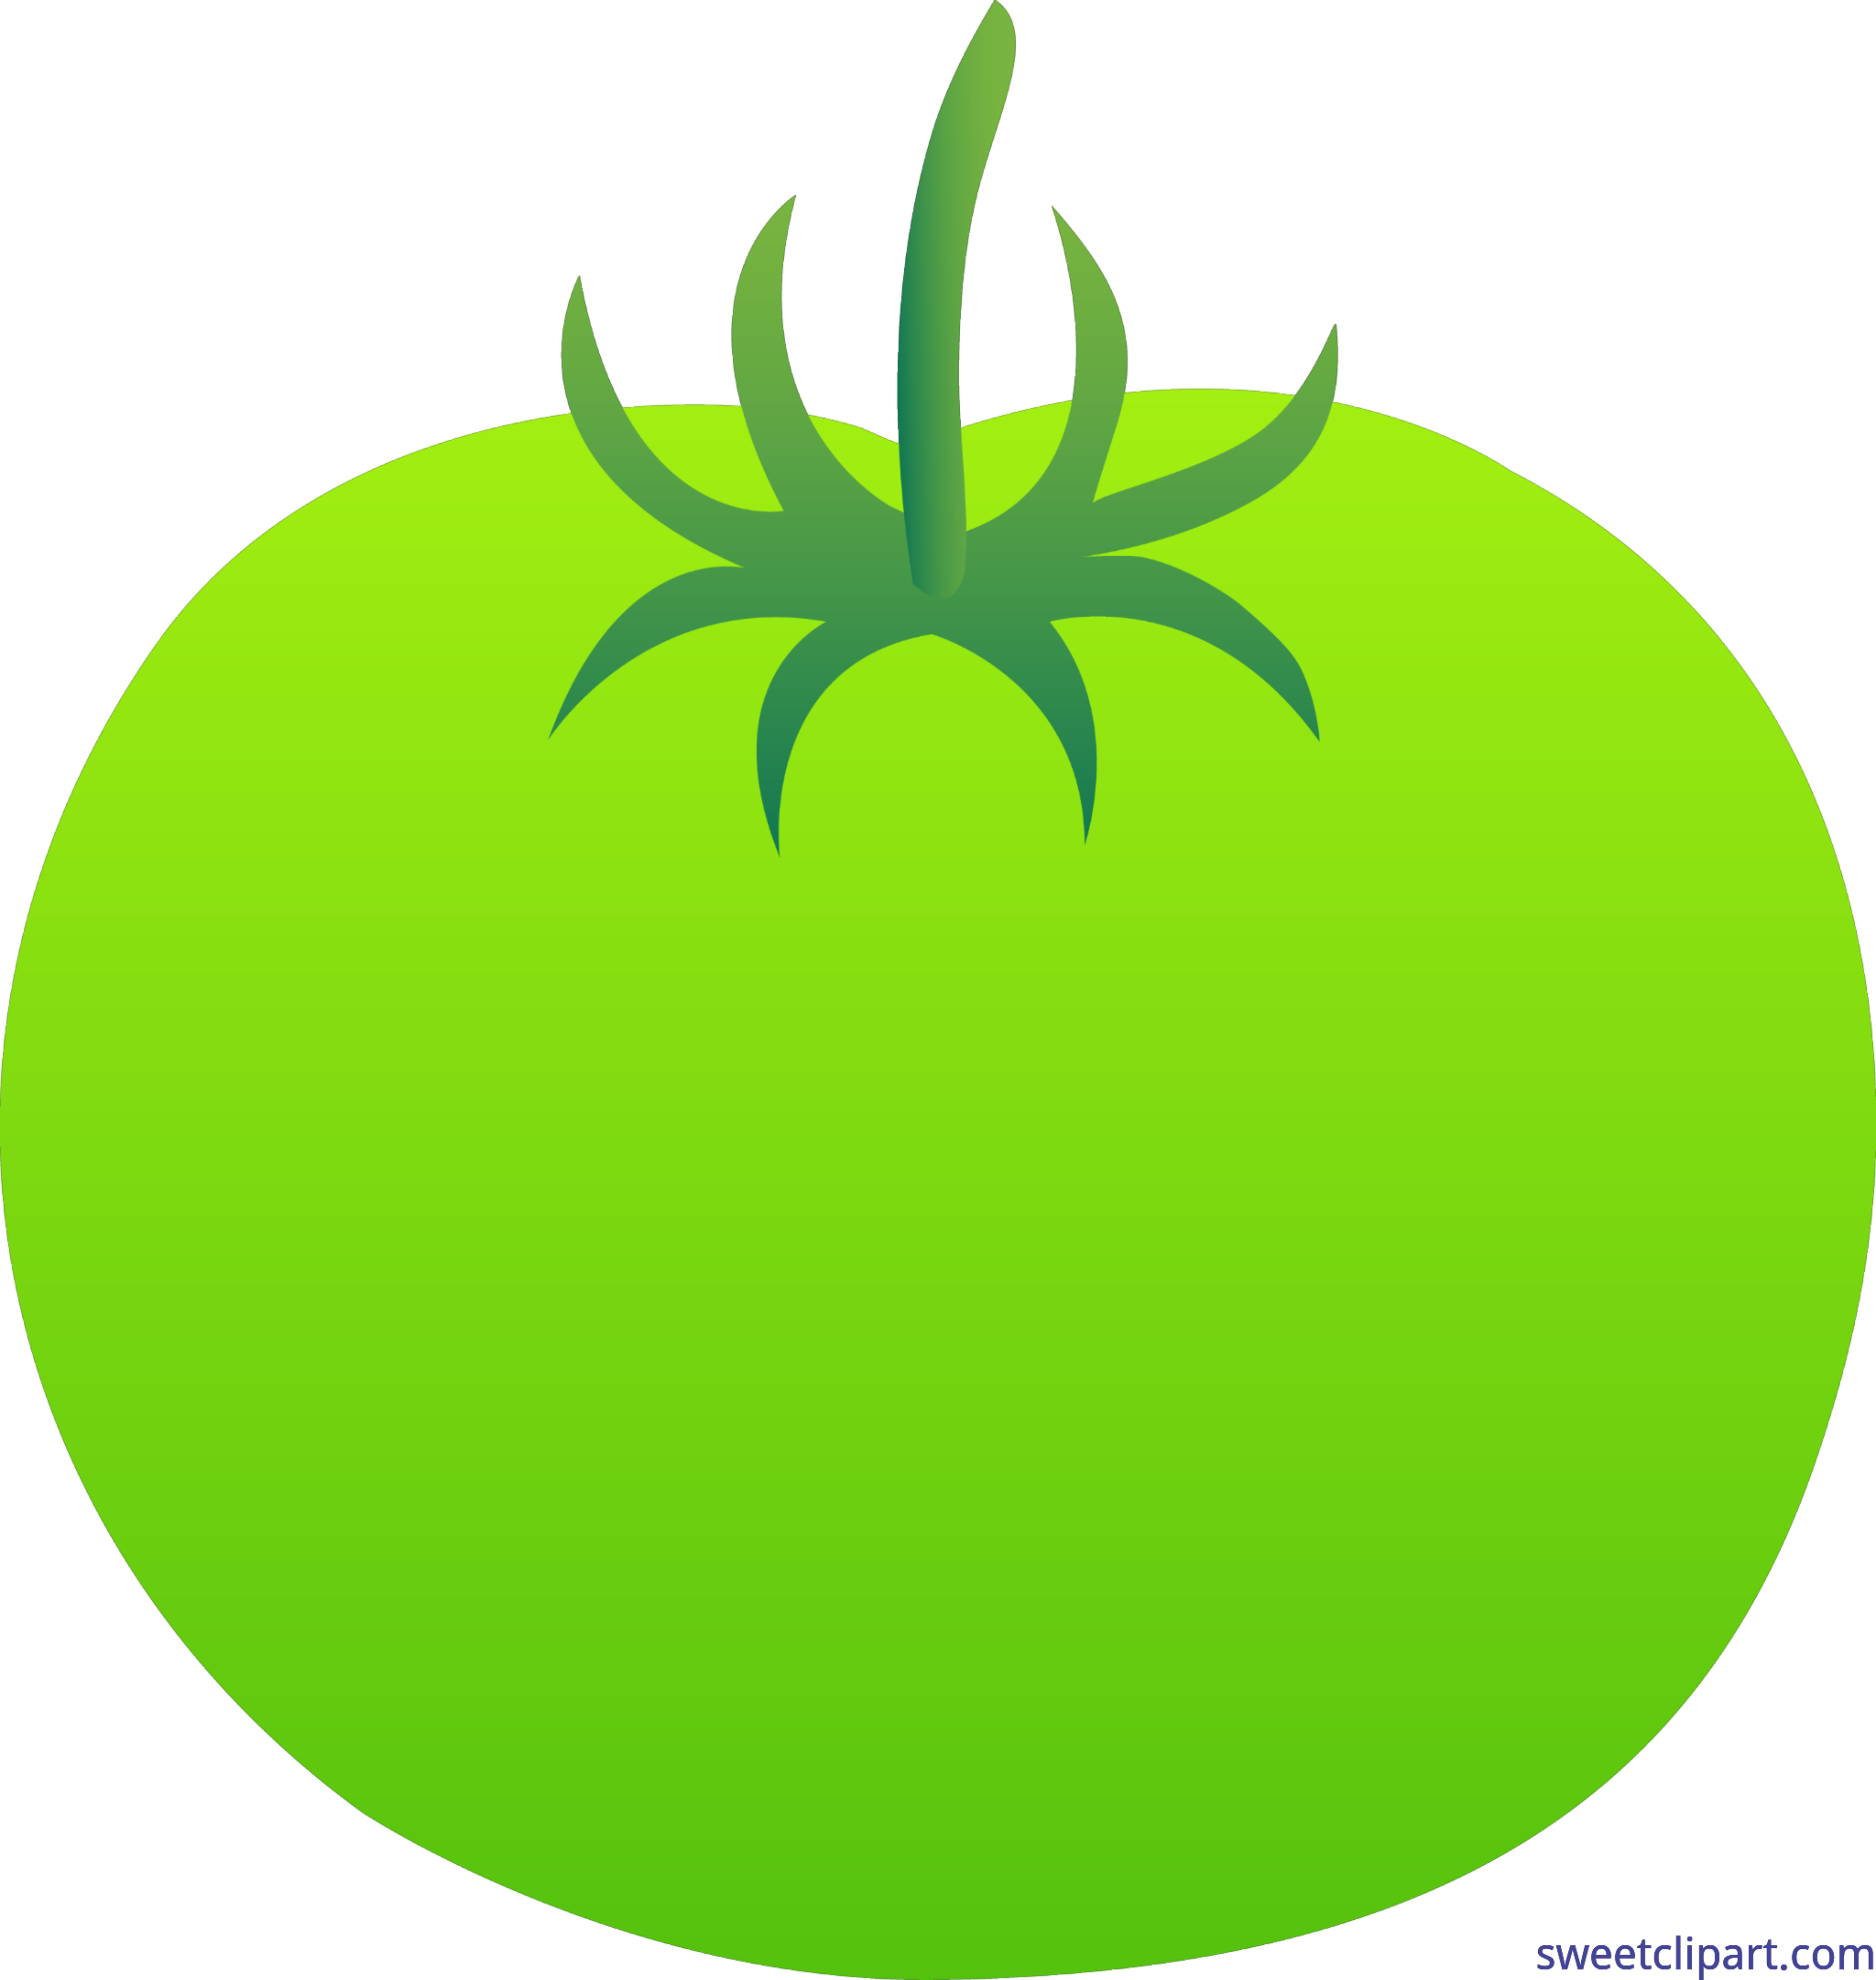 Tomatoes clipart green tomato. Clip art sweet